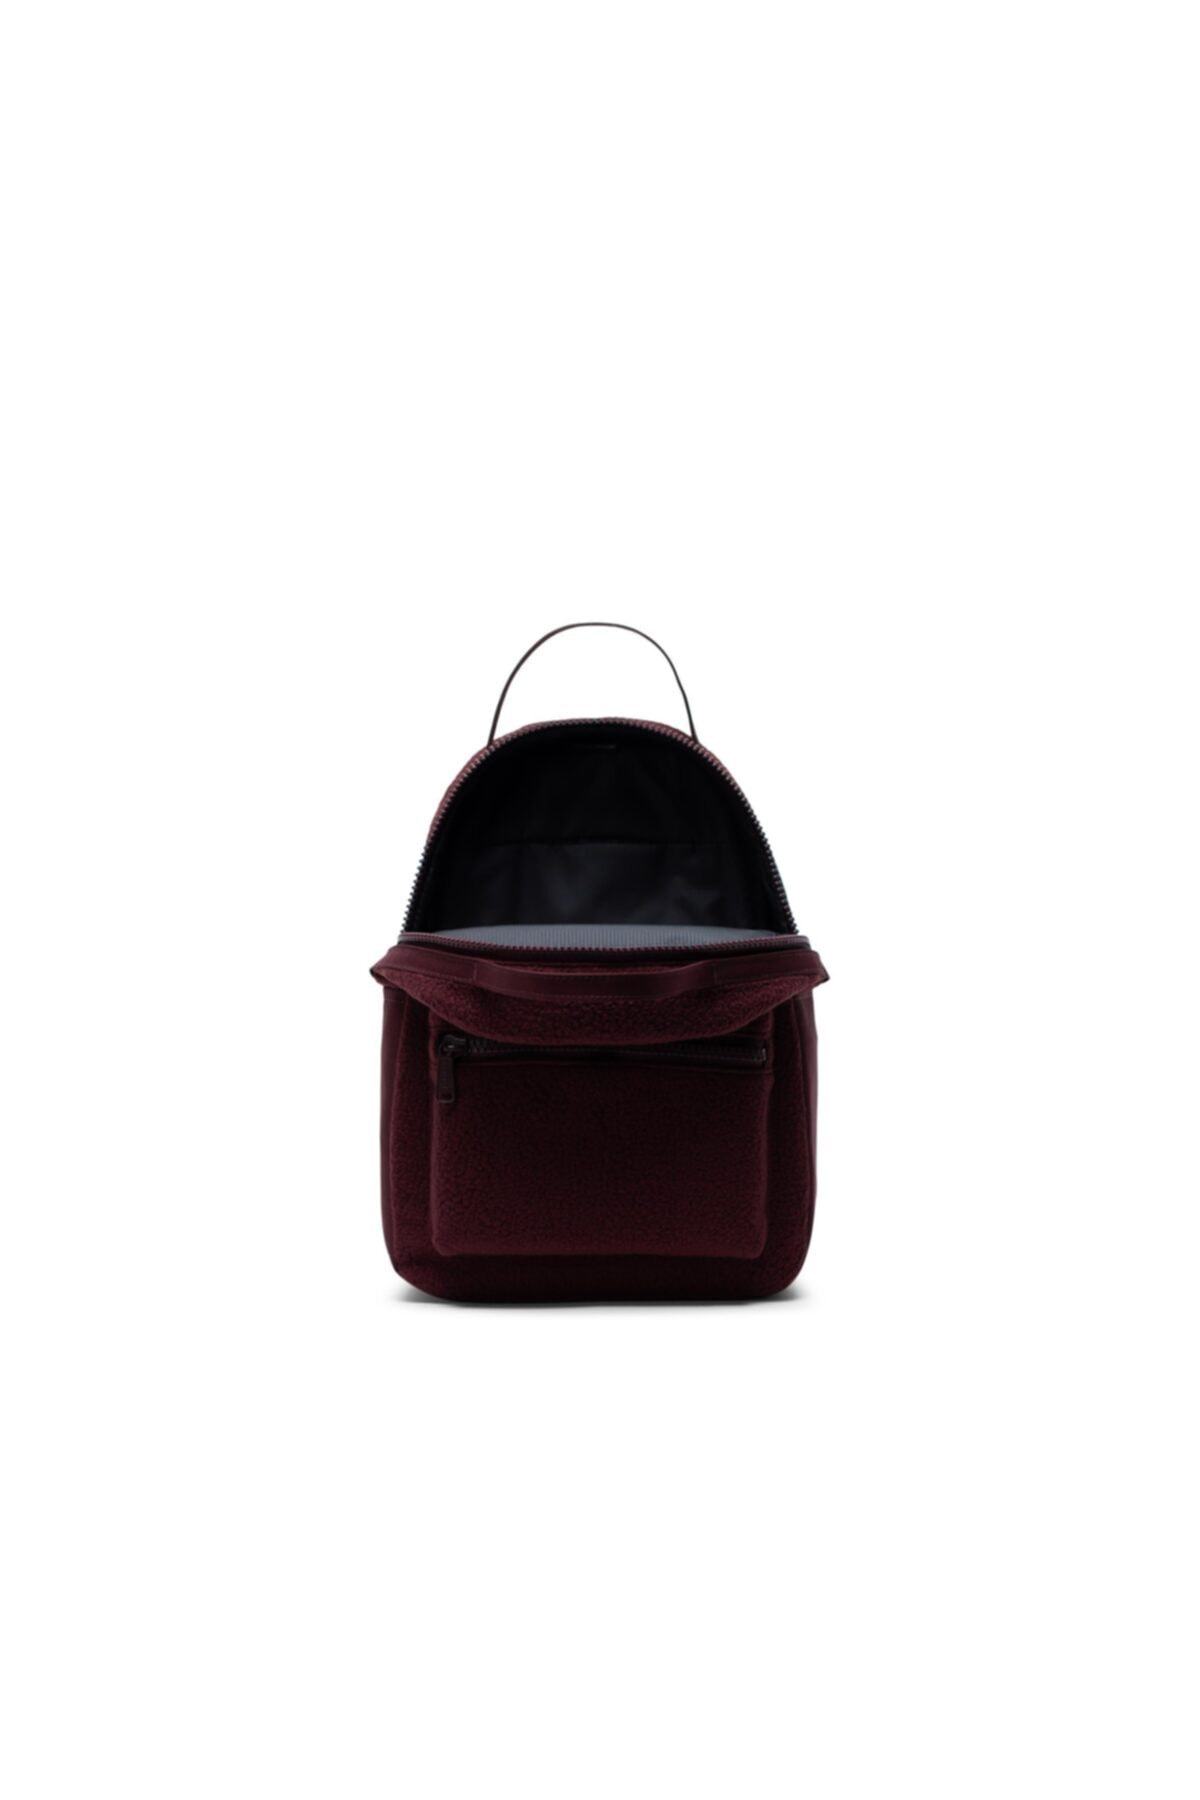 Herschel Supply Co. Nova Small Sherpa Plum Sırt Çantası 2